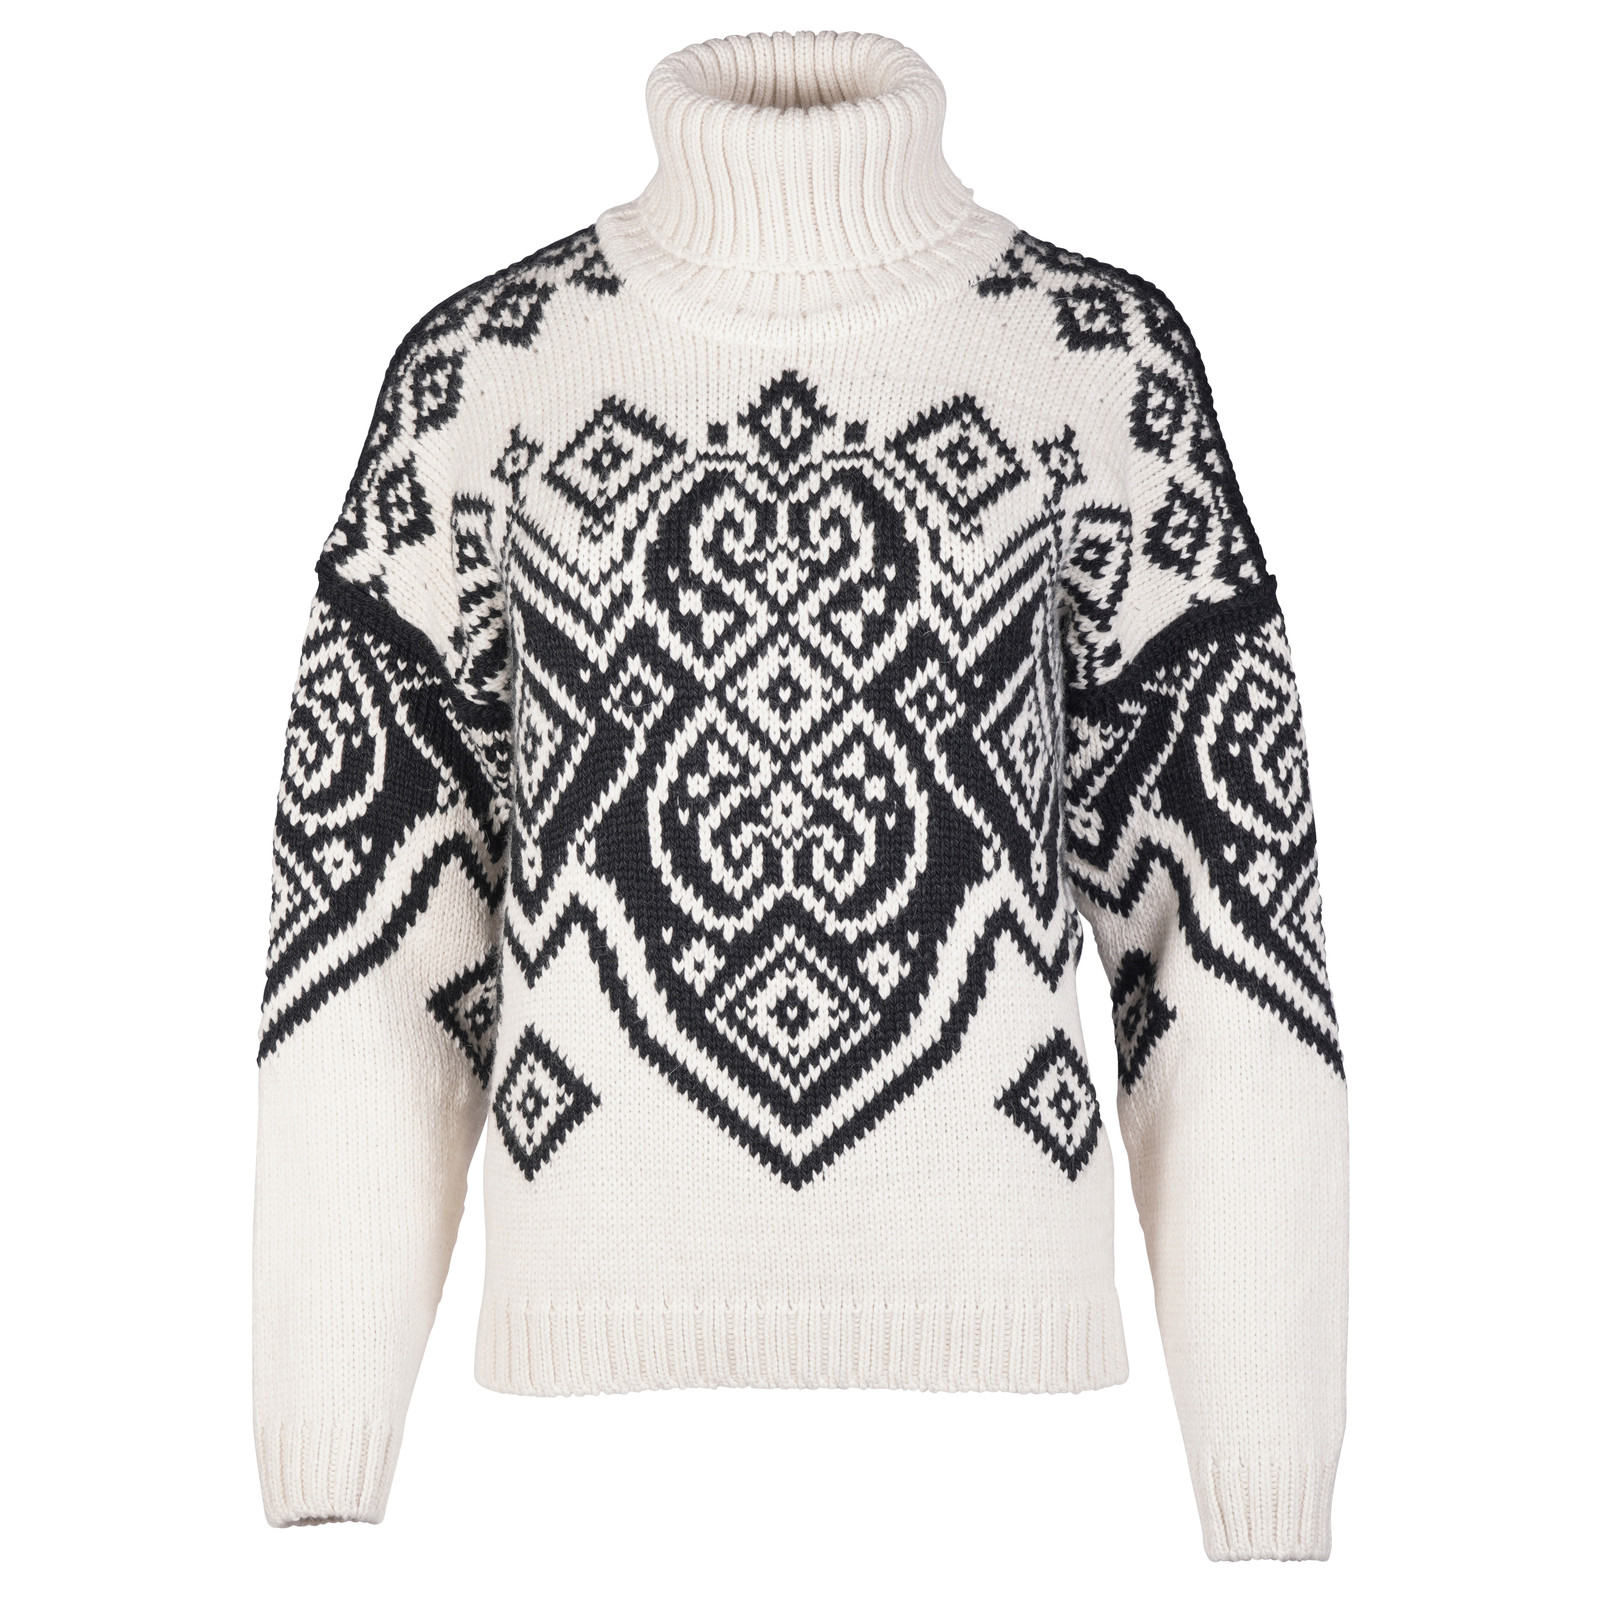 Dale of Norway Falun Sweater, Ladies - Off White/Black, 94041-A